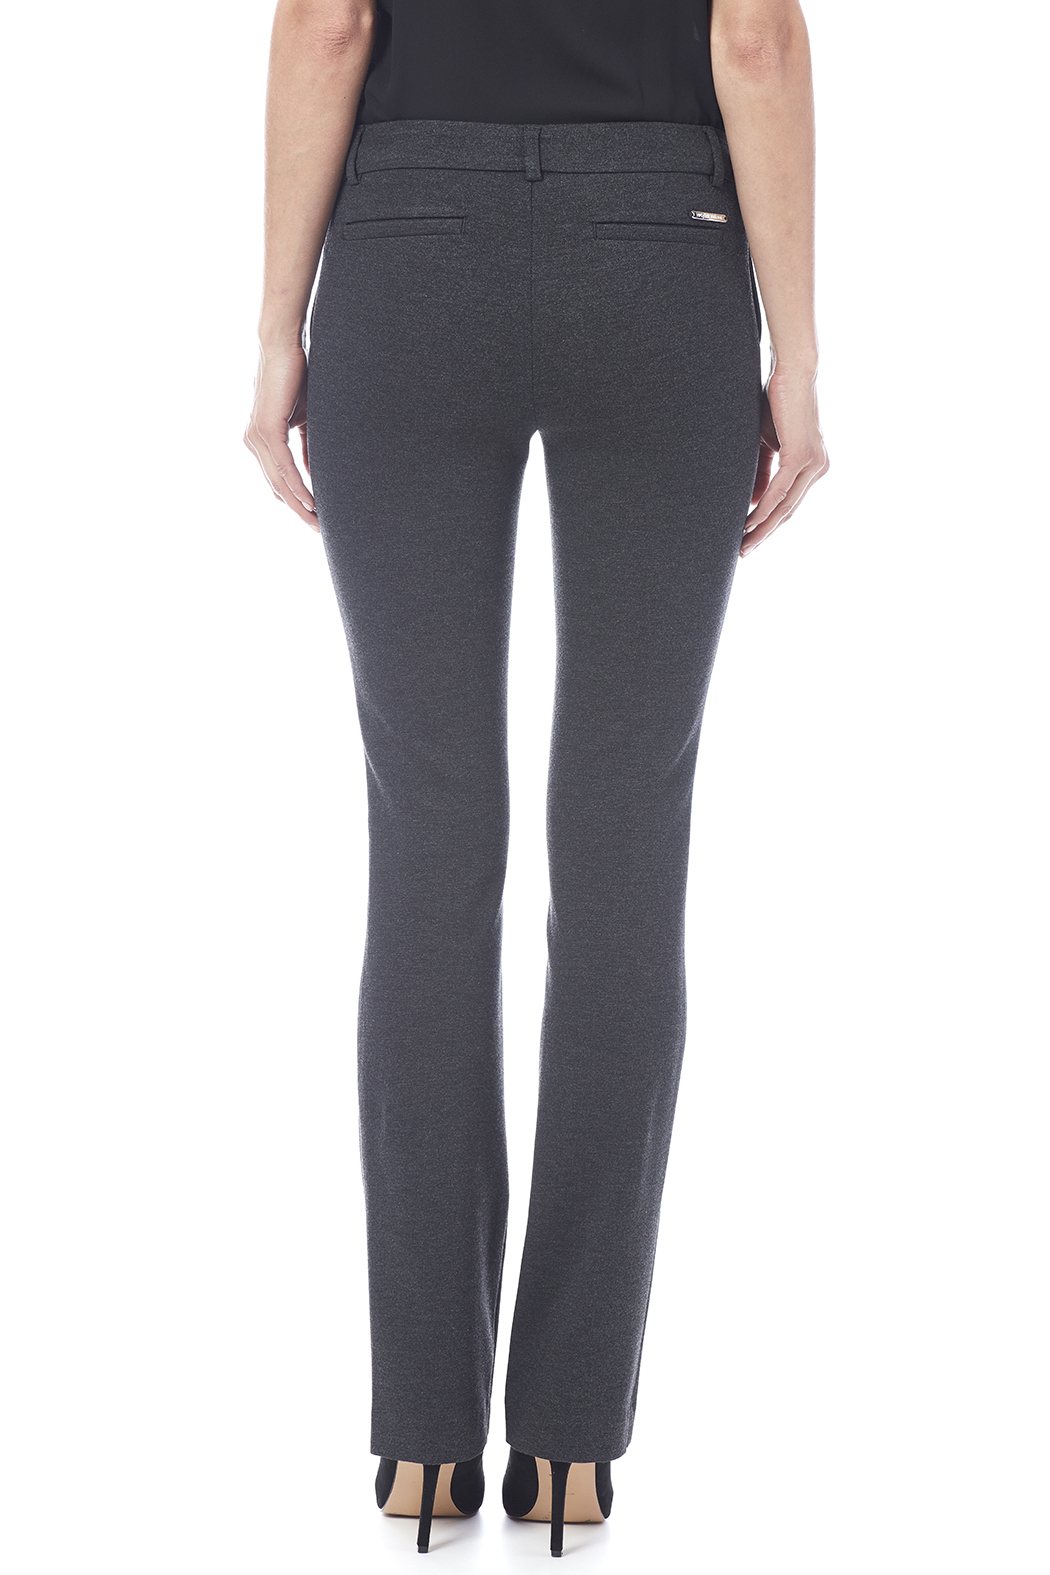 I Love Tyler Madison Charcoal Trouser Pant - Back Cropped Image